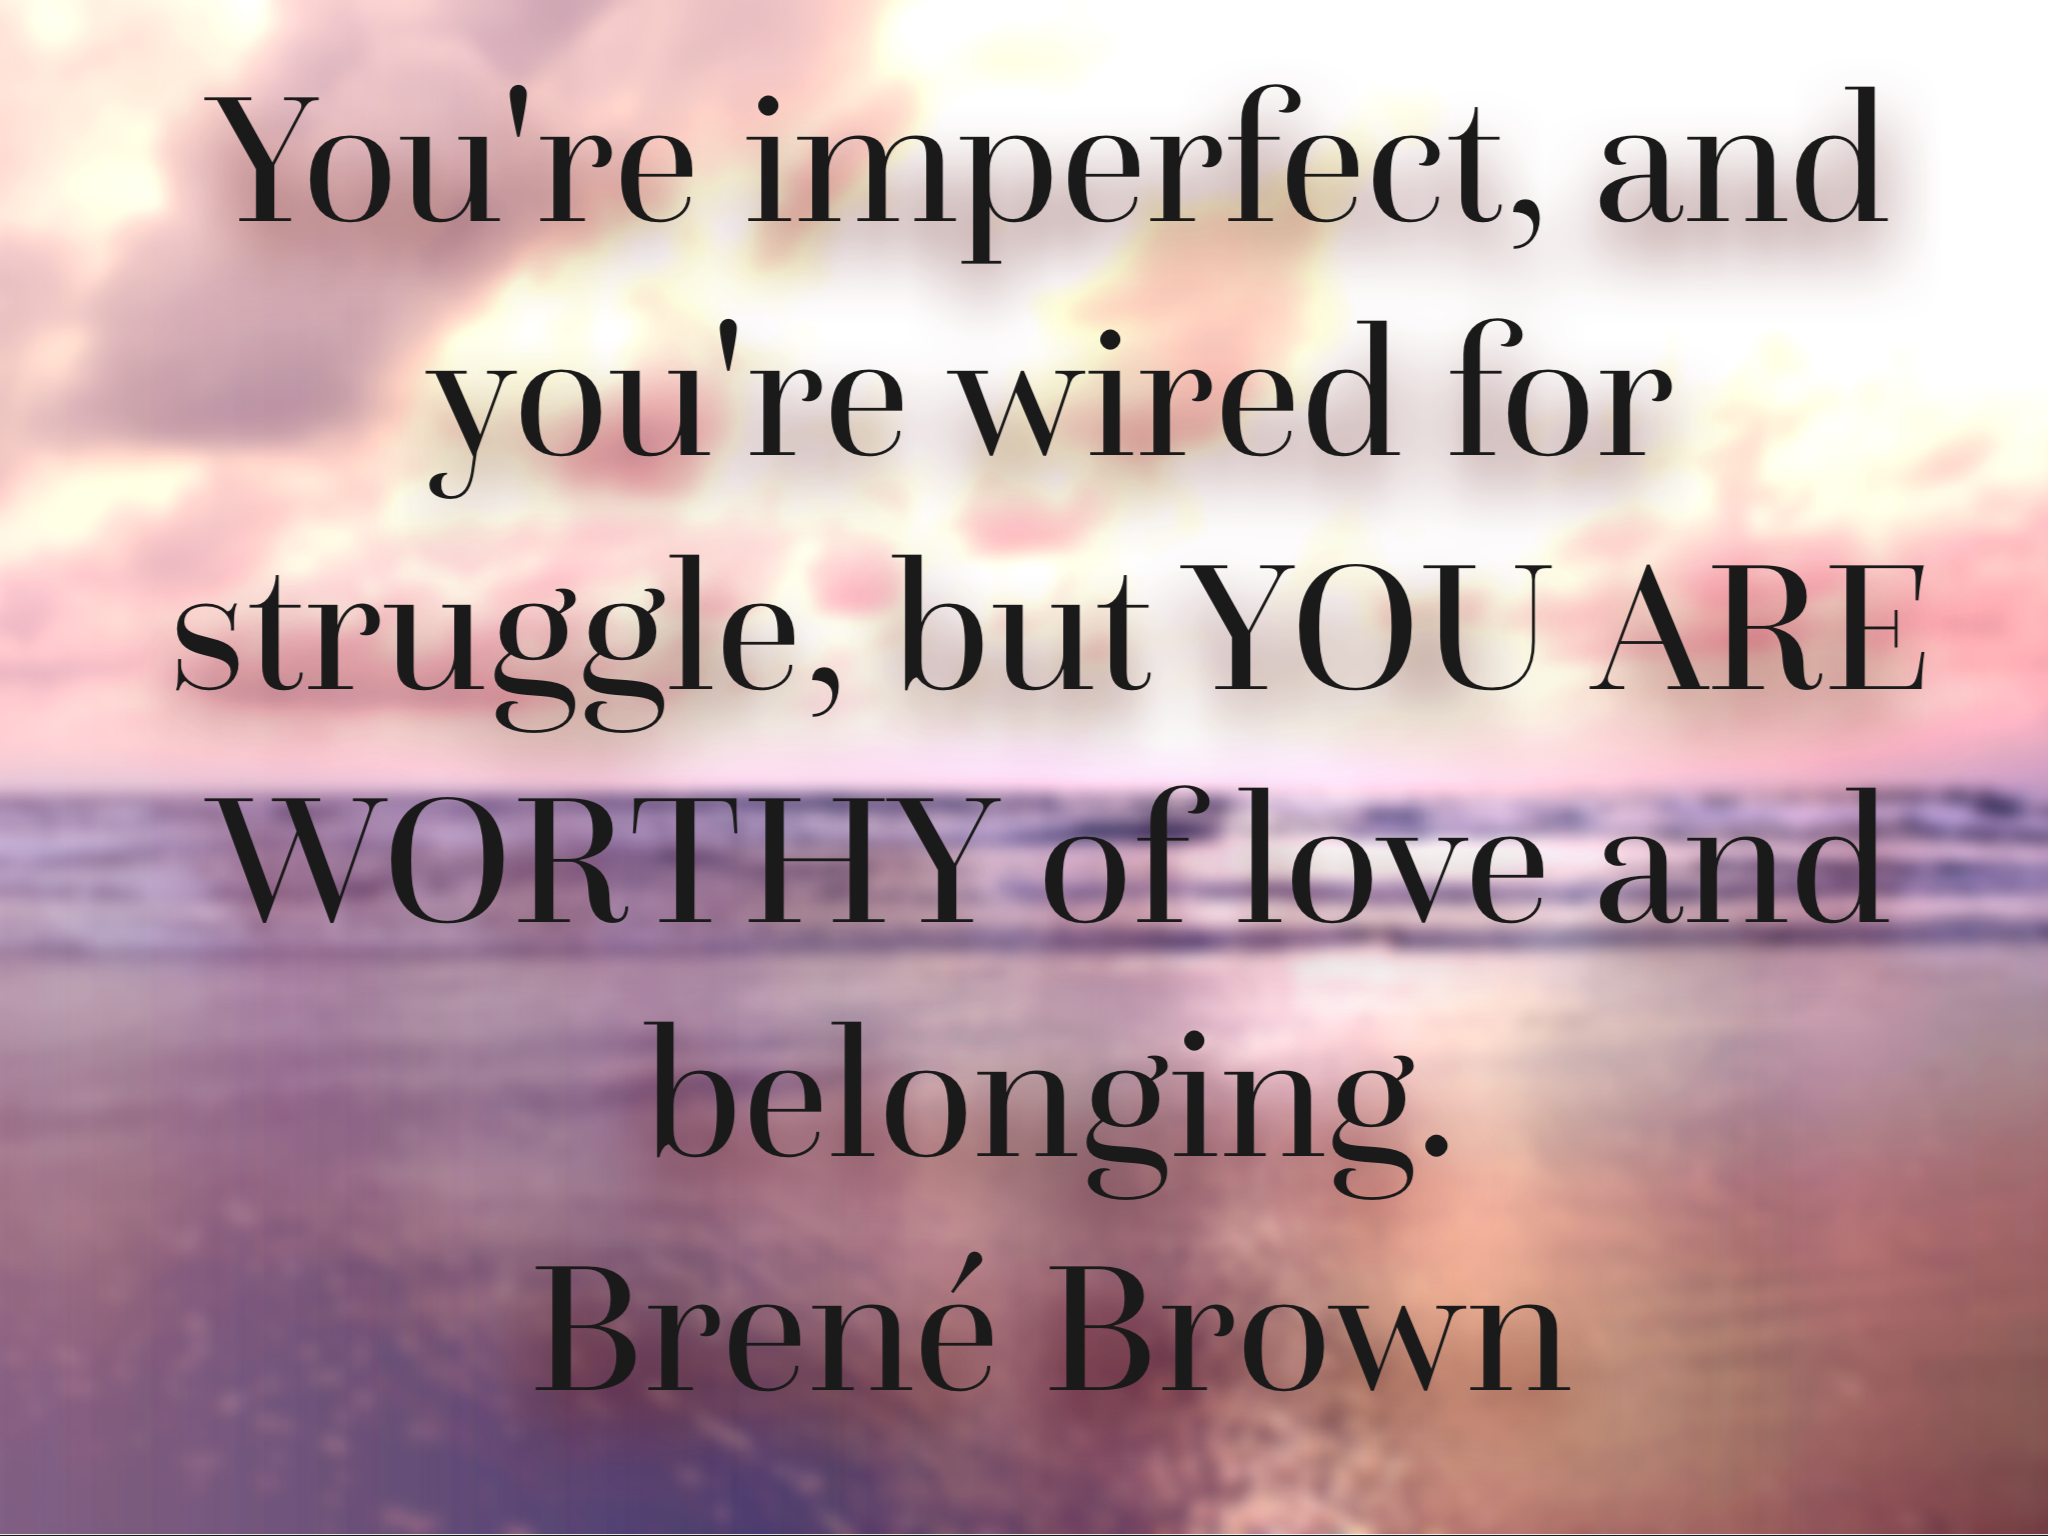 One of my favorite quotes from  Brené Brown  - Researcher and Storyteller